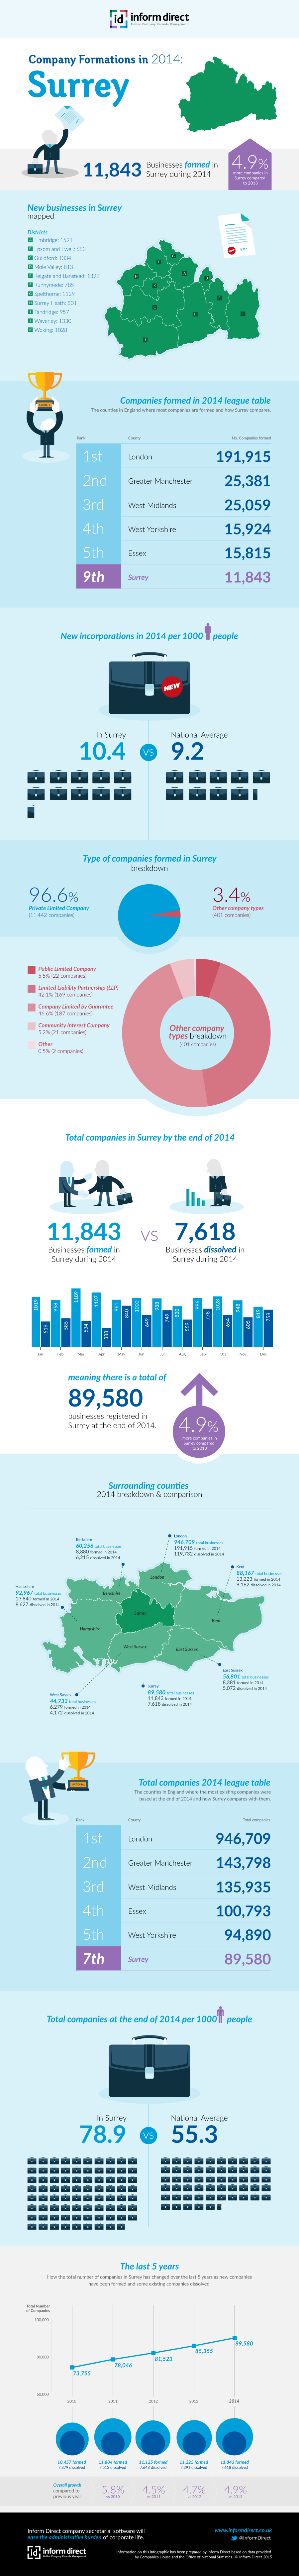 Inform Direct - Company Formations in Surrey 2014 Infographic